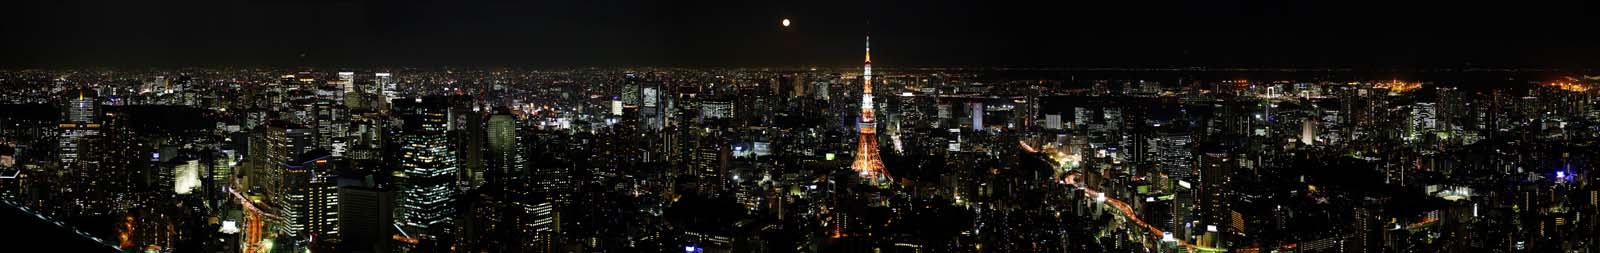 photo,material,free,landscape,picture,stock photo,Creative Commons,Tokyo panorama, Tokyo Tower, high-rise building, big city, knight view